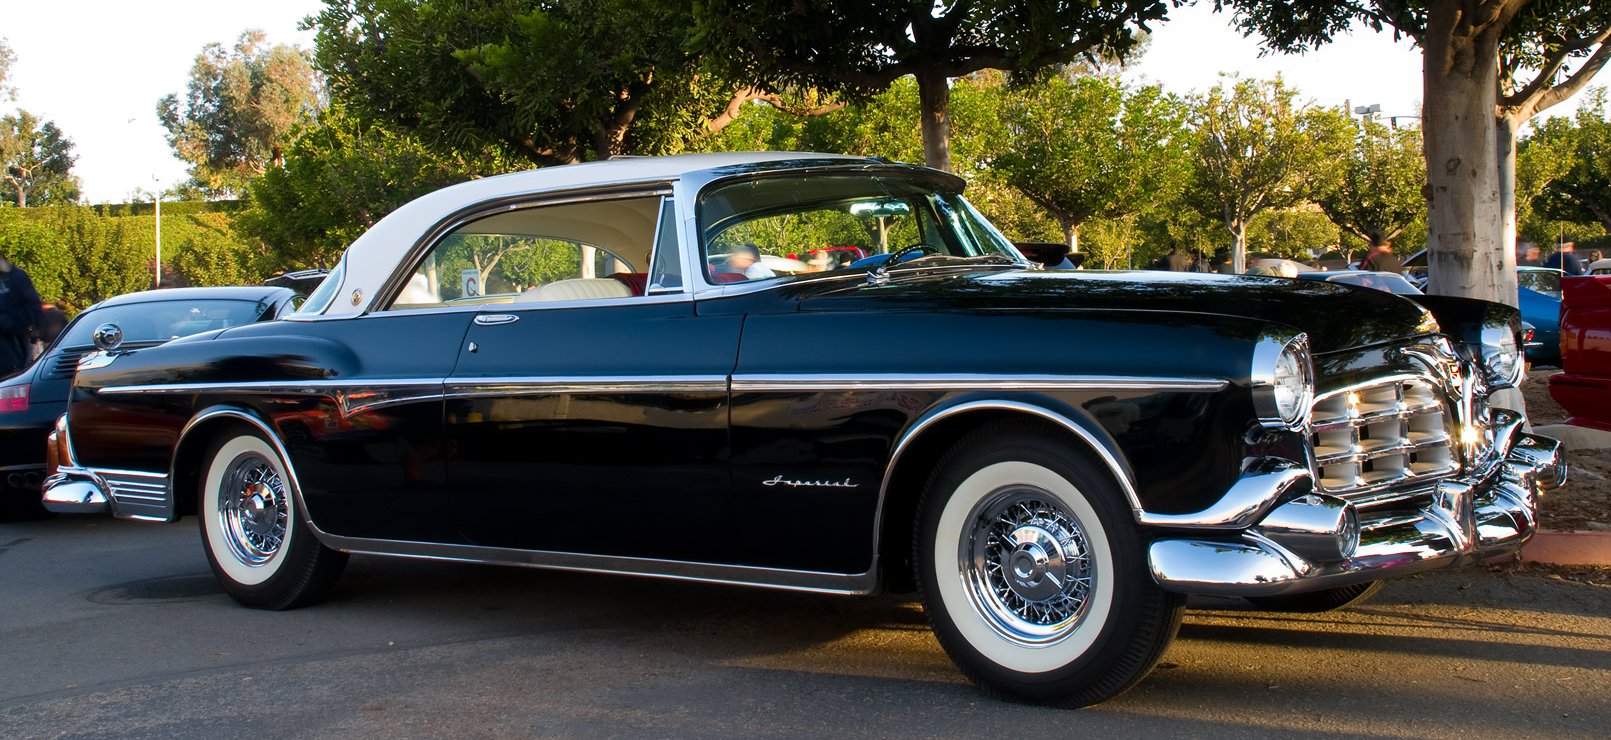 1955 Chrysler Crown Imperial Information And Photos Momentcar